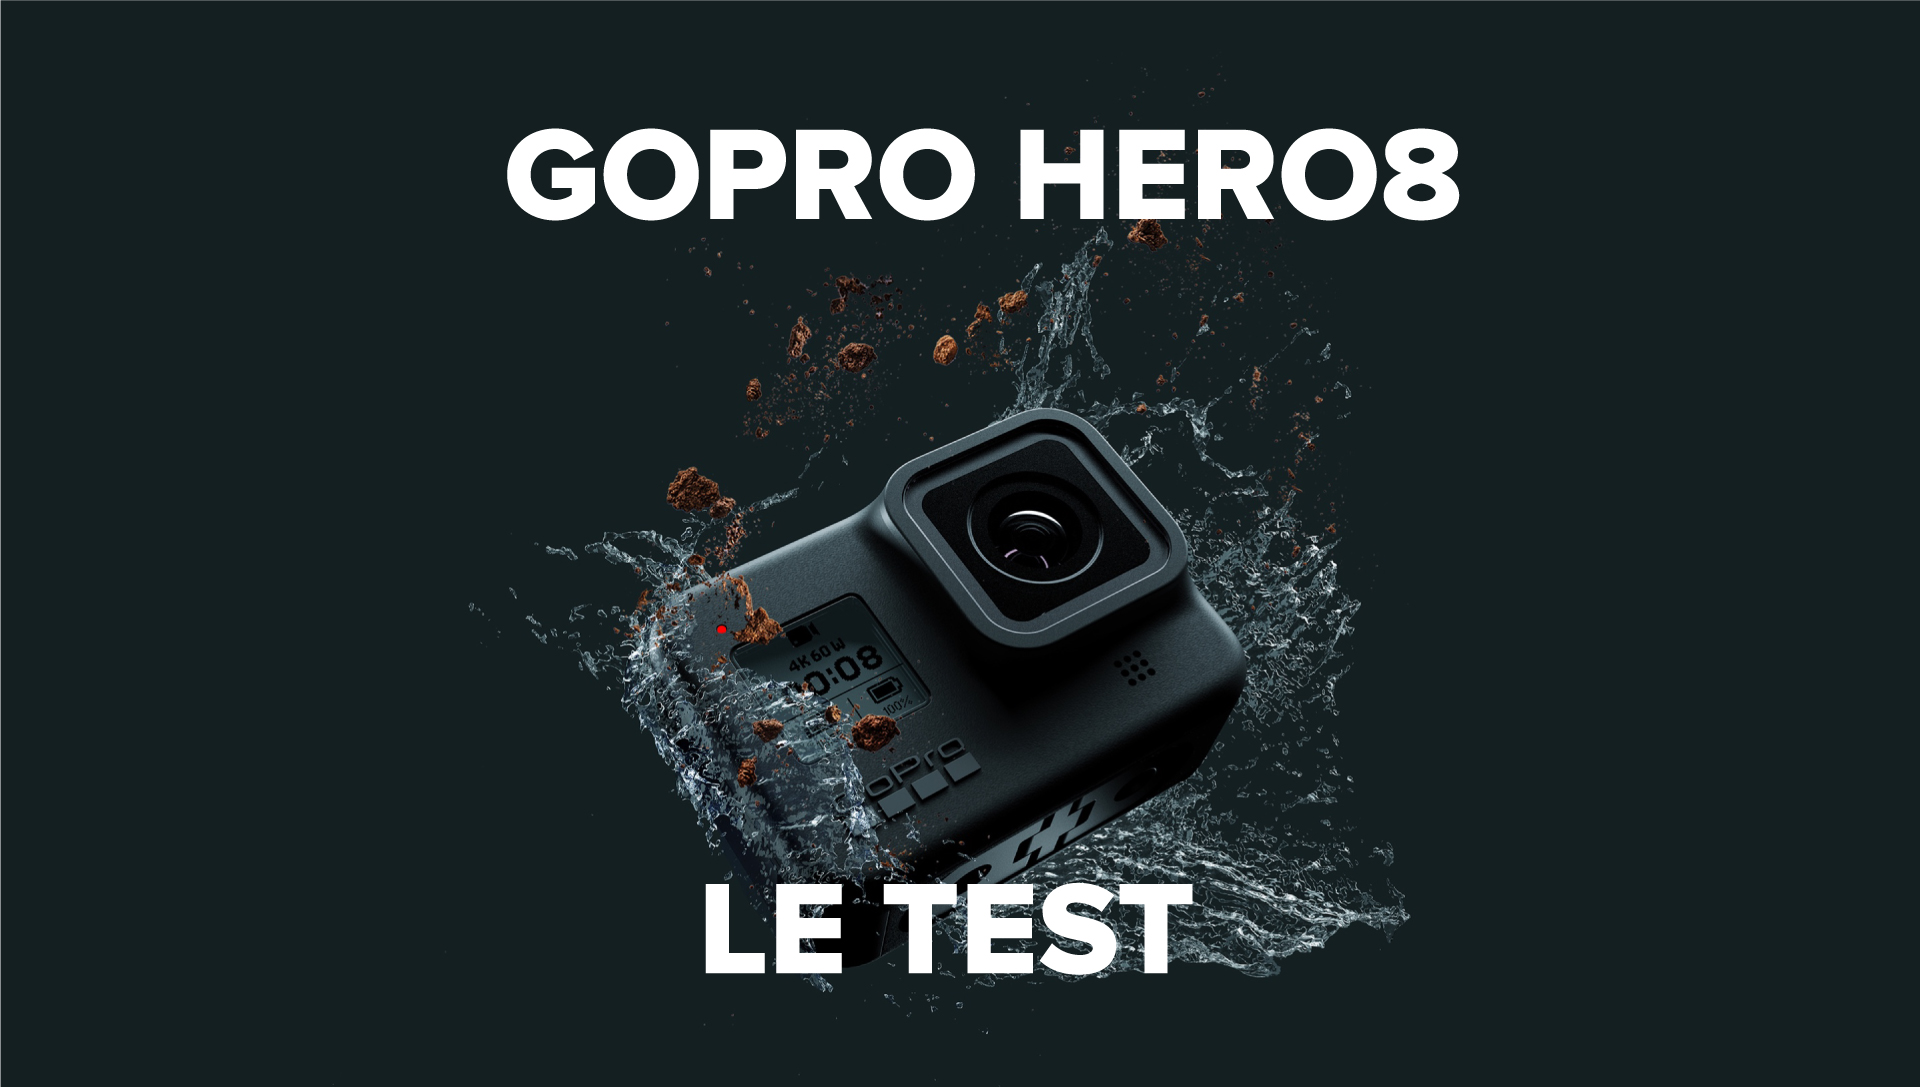 GoPro HERO 8 : le test complet